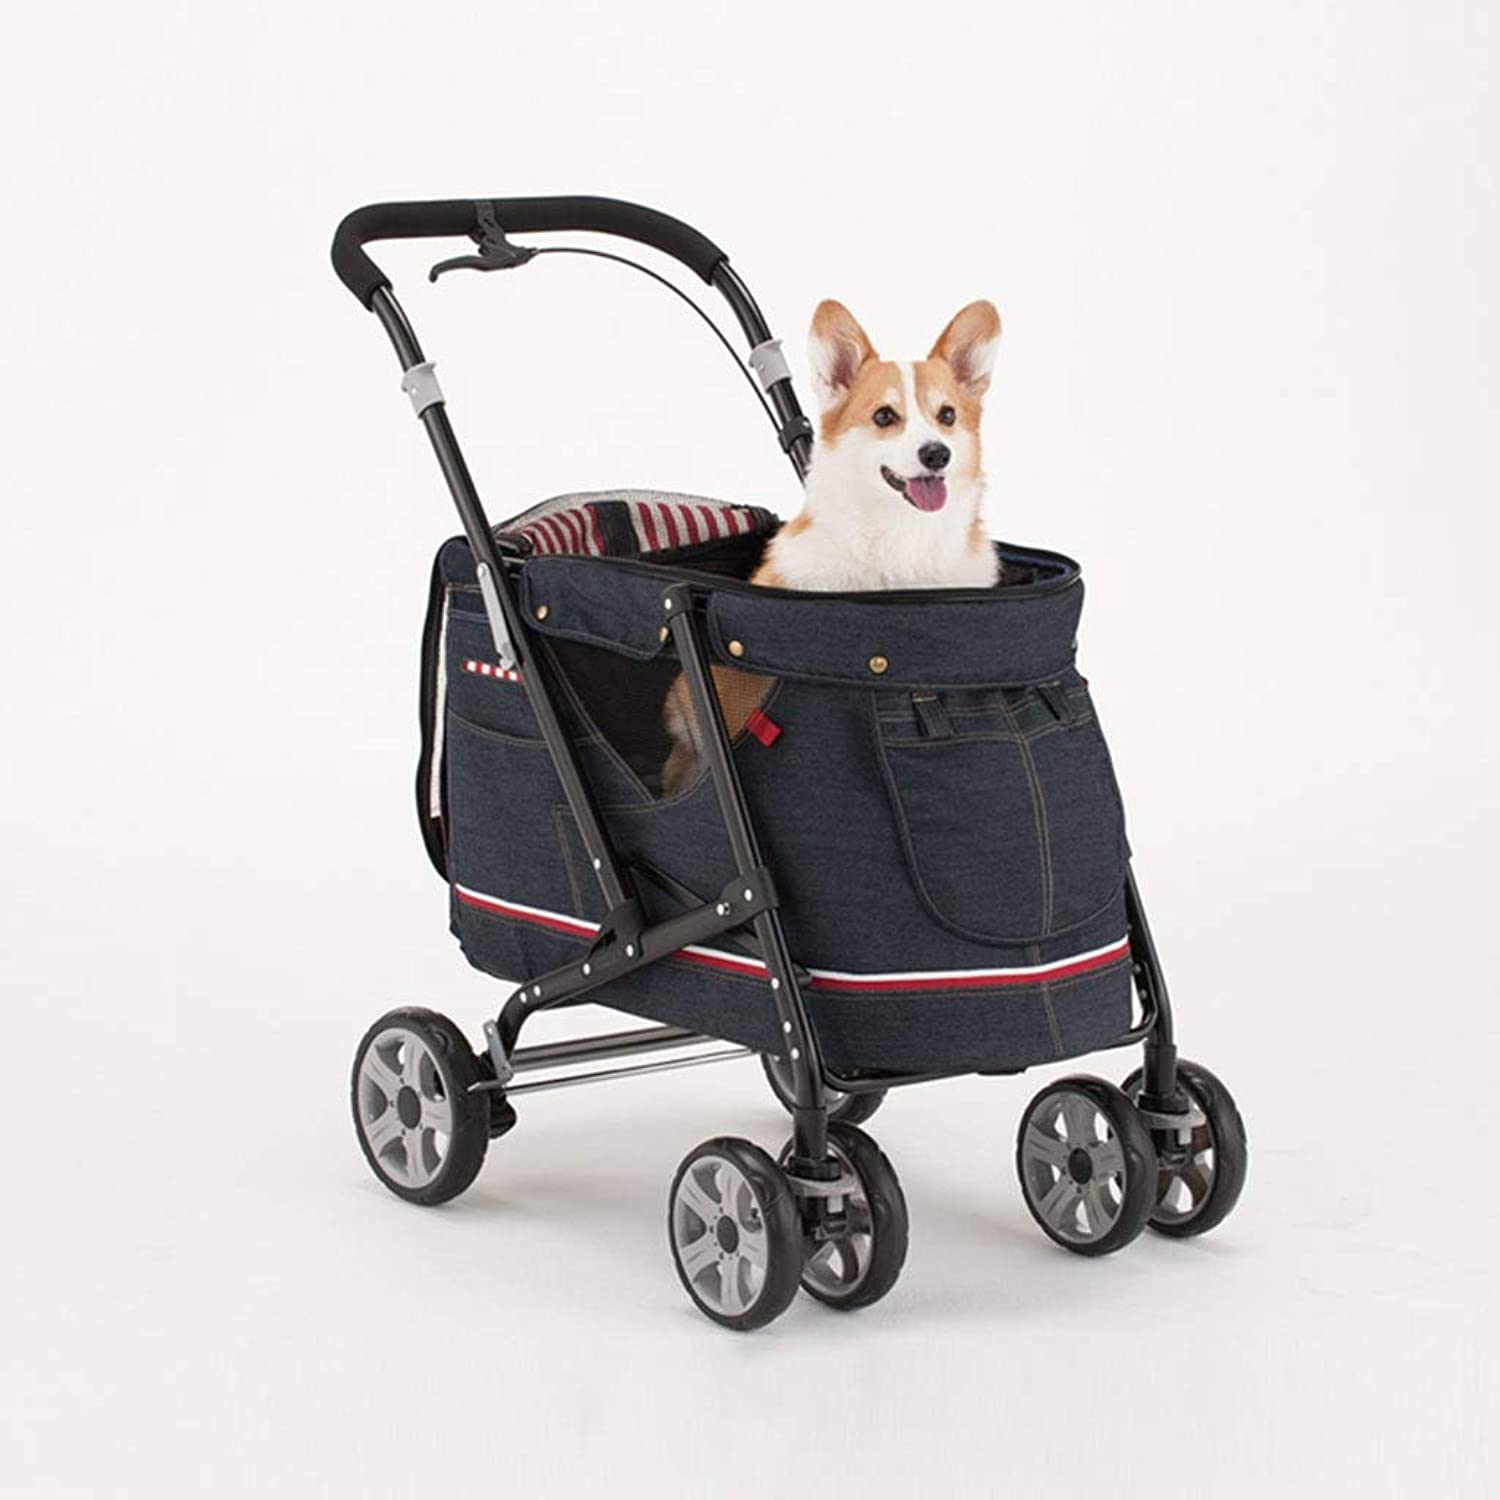 MIAOLIDP Pet stroller  large and medium dogs and cats  out of the foldable  portable stroller  sunscreen Pet cat carrier (Size   580x890x970mm)